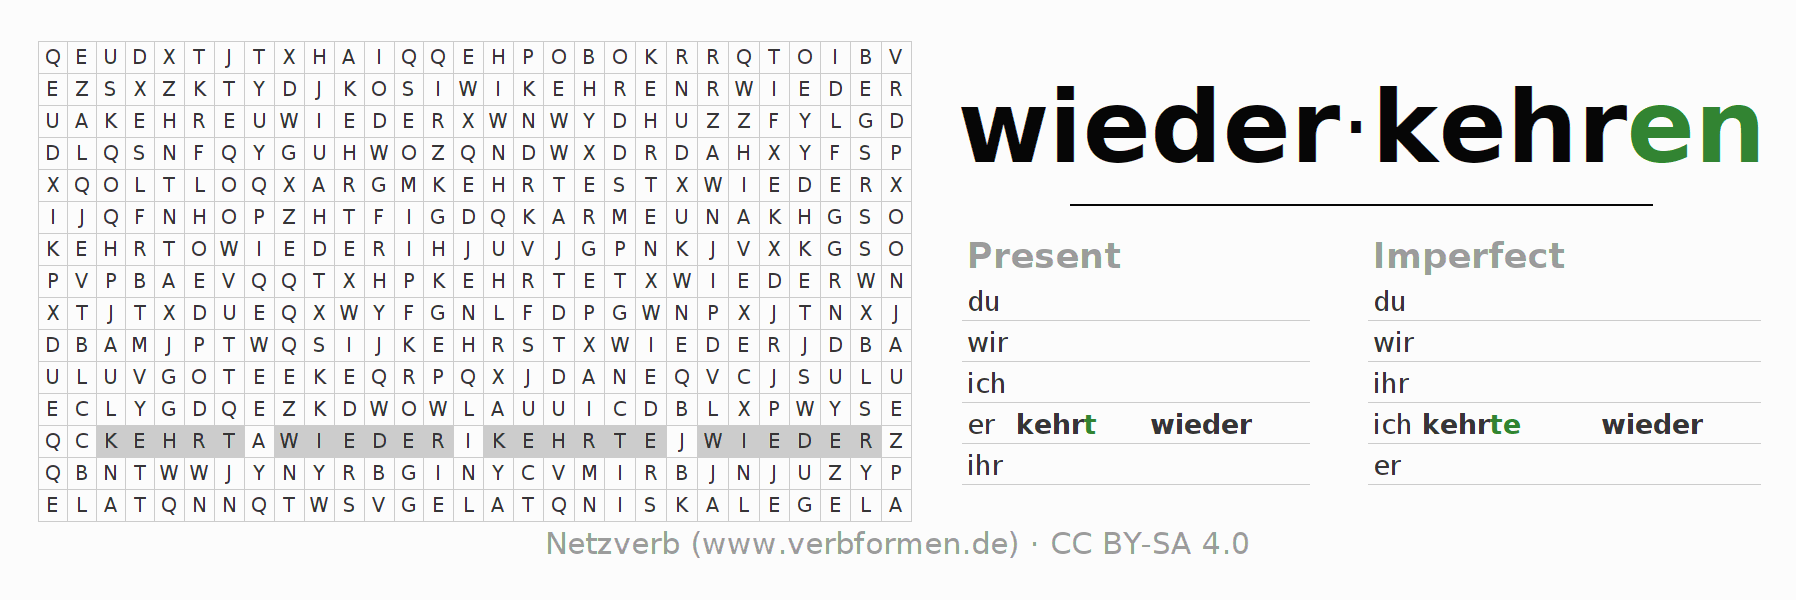 Word search puzzle for the conjugation of the verb wiederkehren